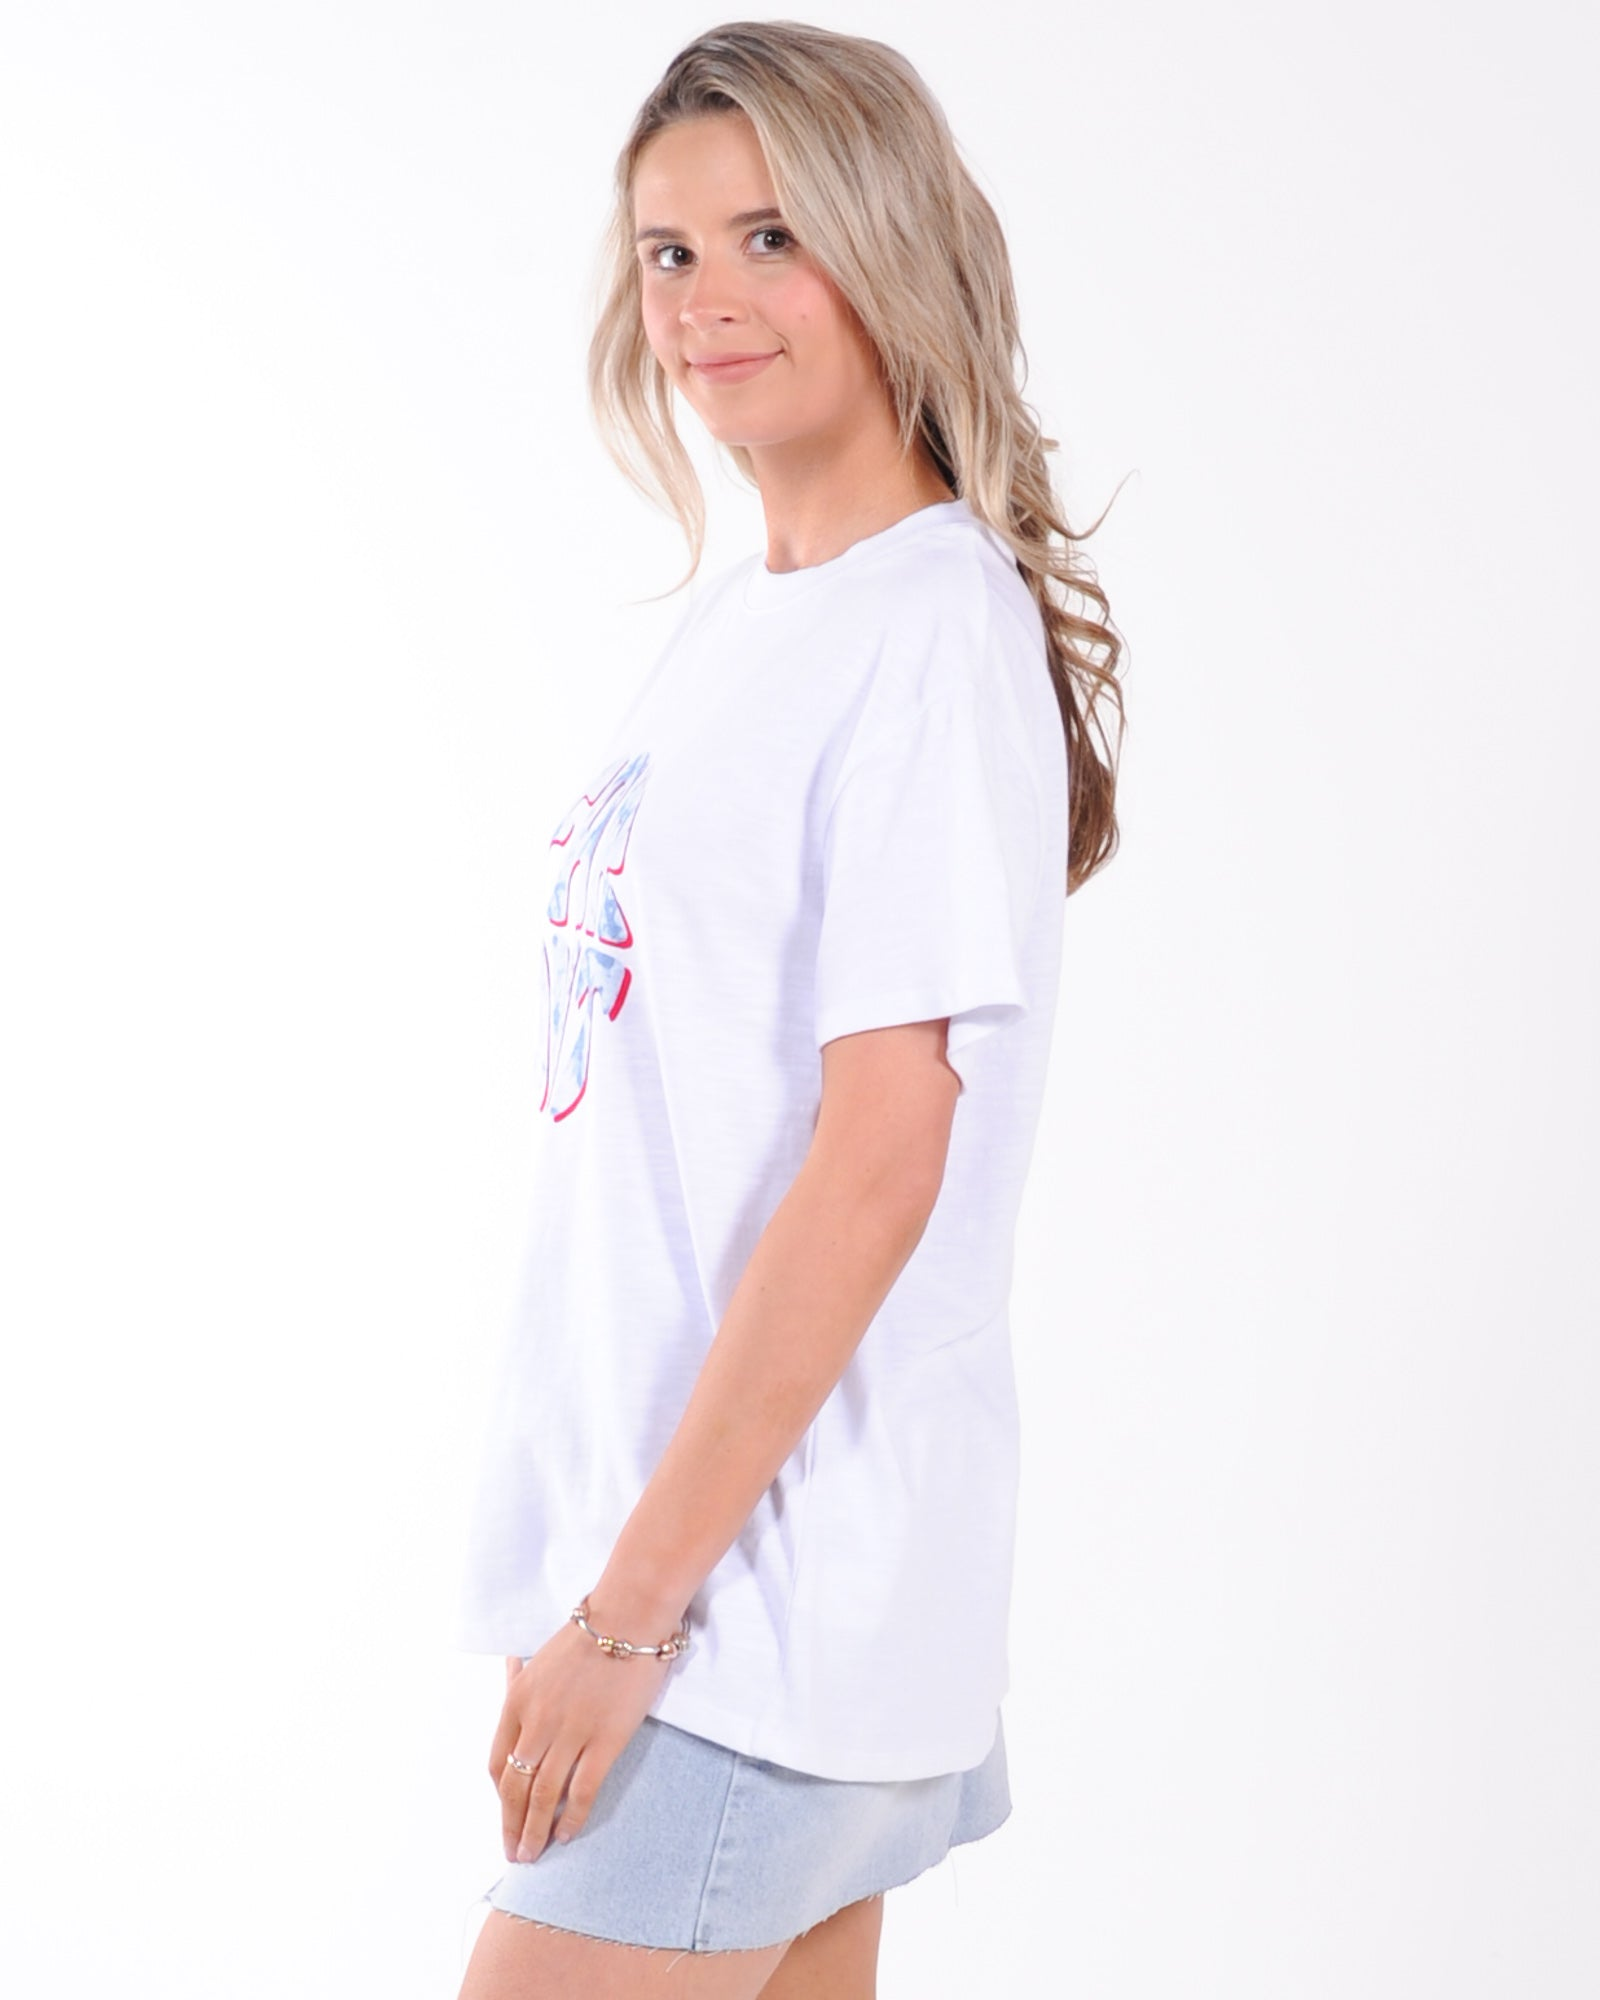 All About Eve Far Out Tee - White